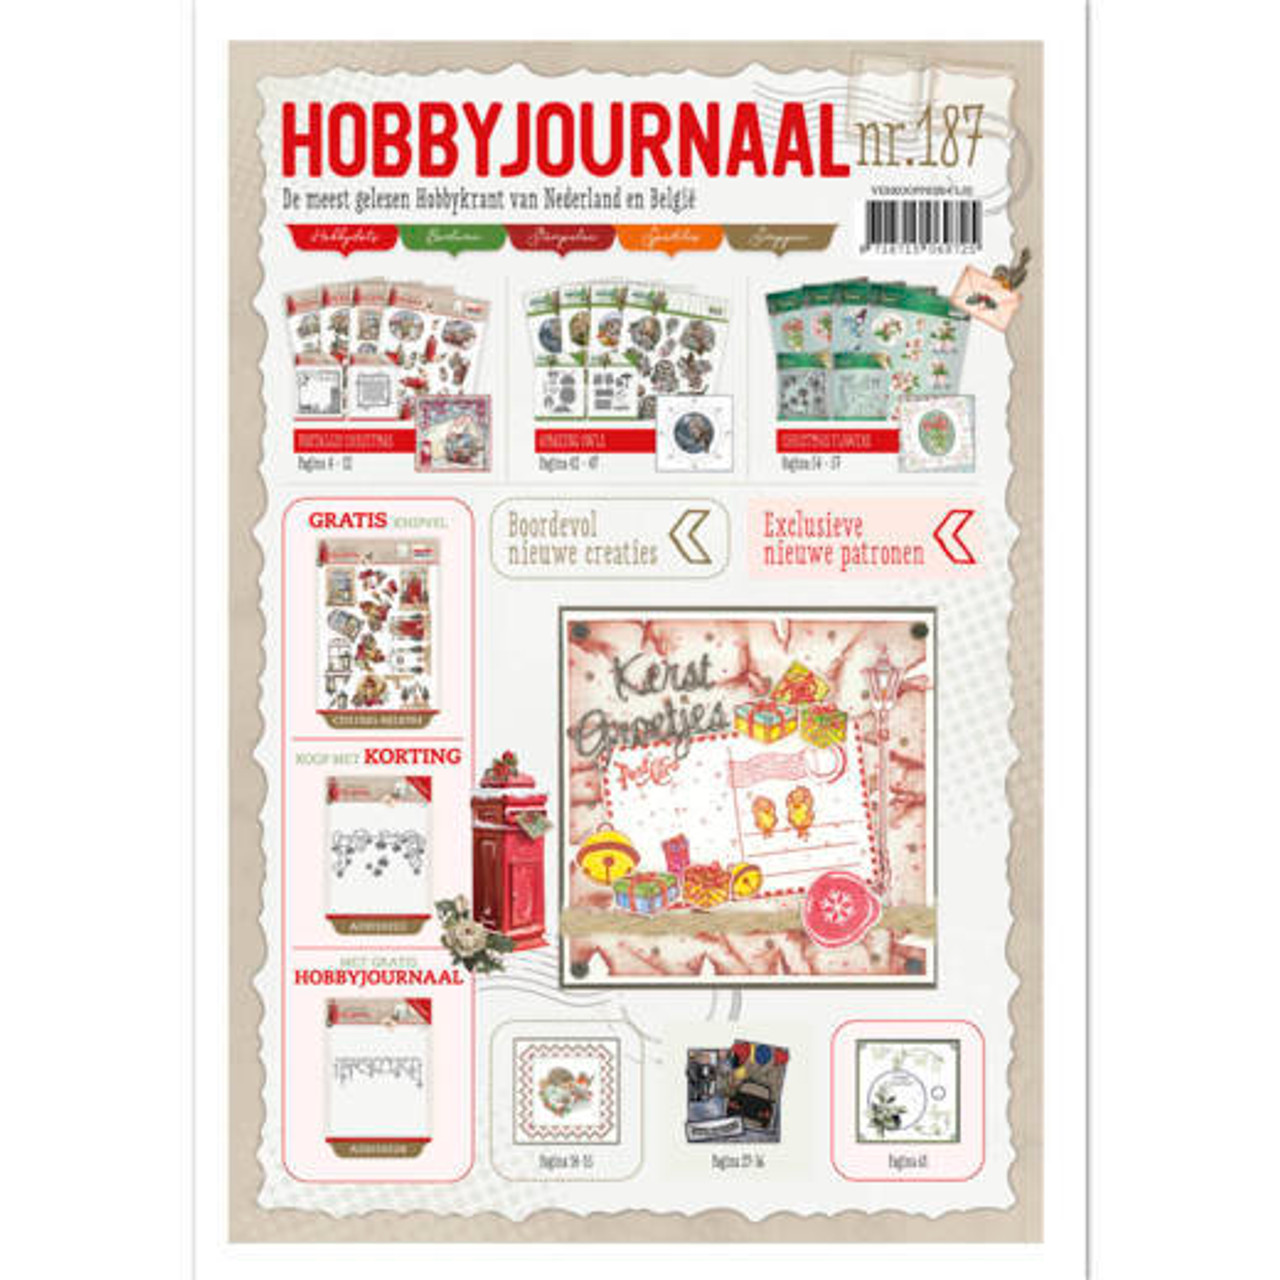 Hobbyjournaal 187 with free 3D Push-Out Sheet